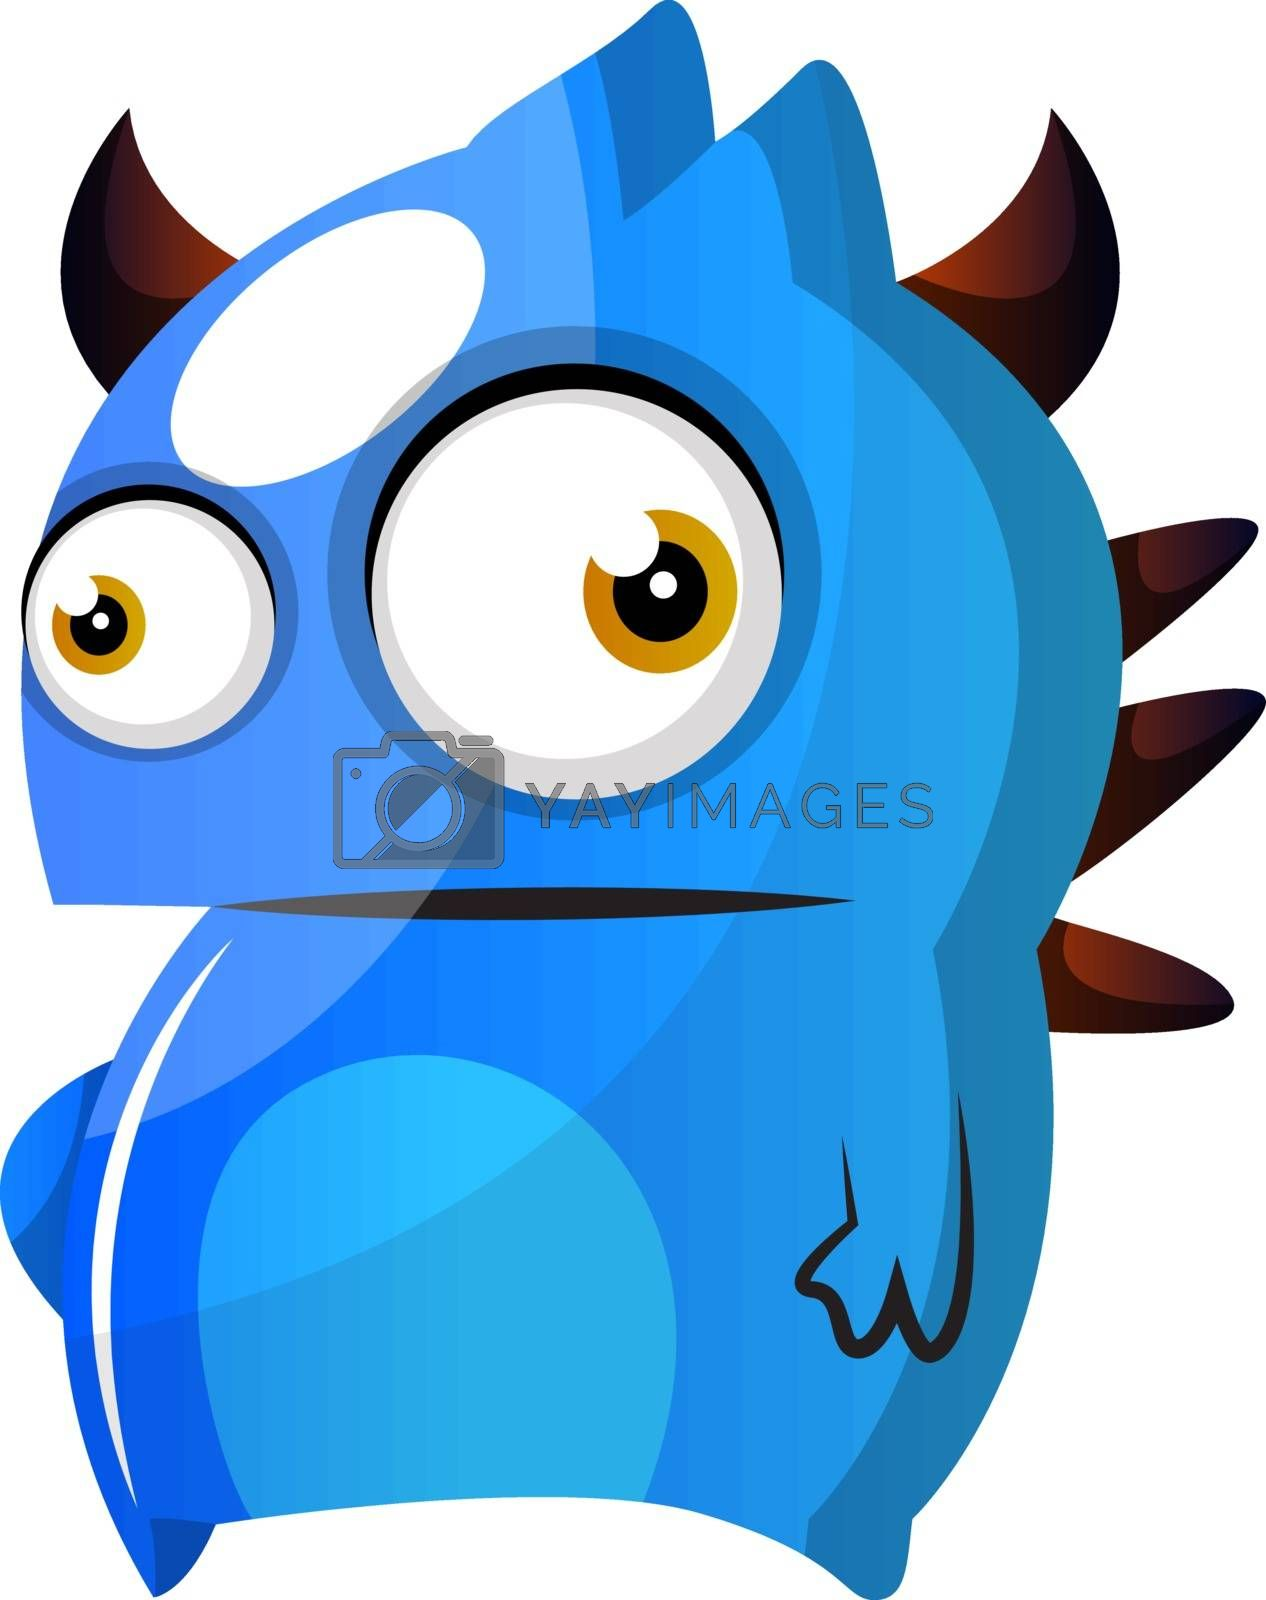 Royalty free image of Blue monster with horns illustration vector on white background by Morphart